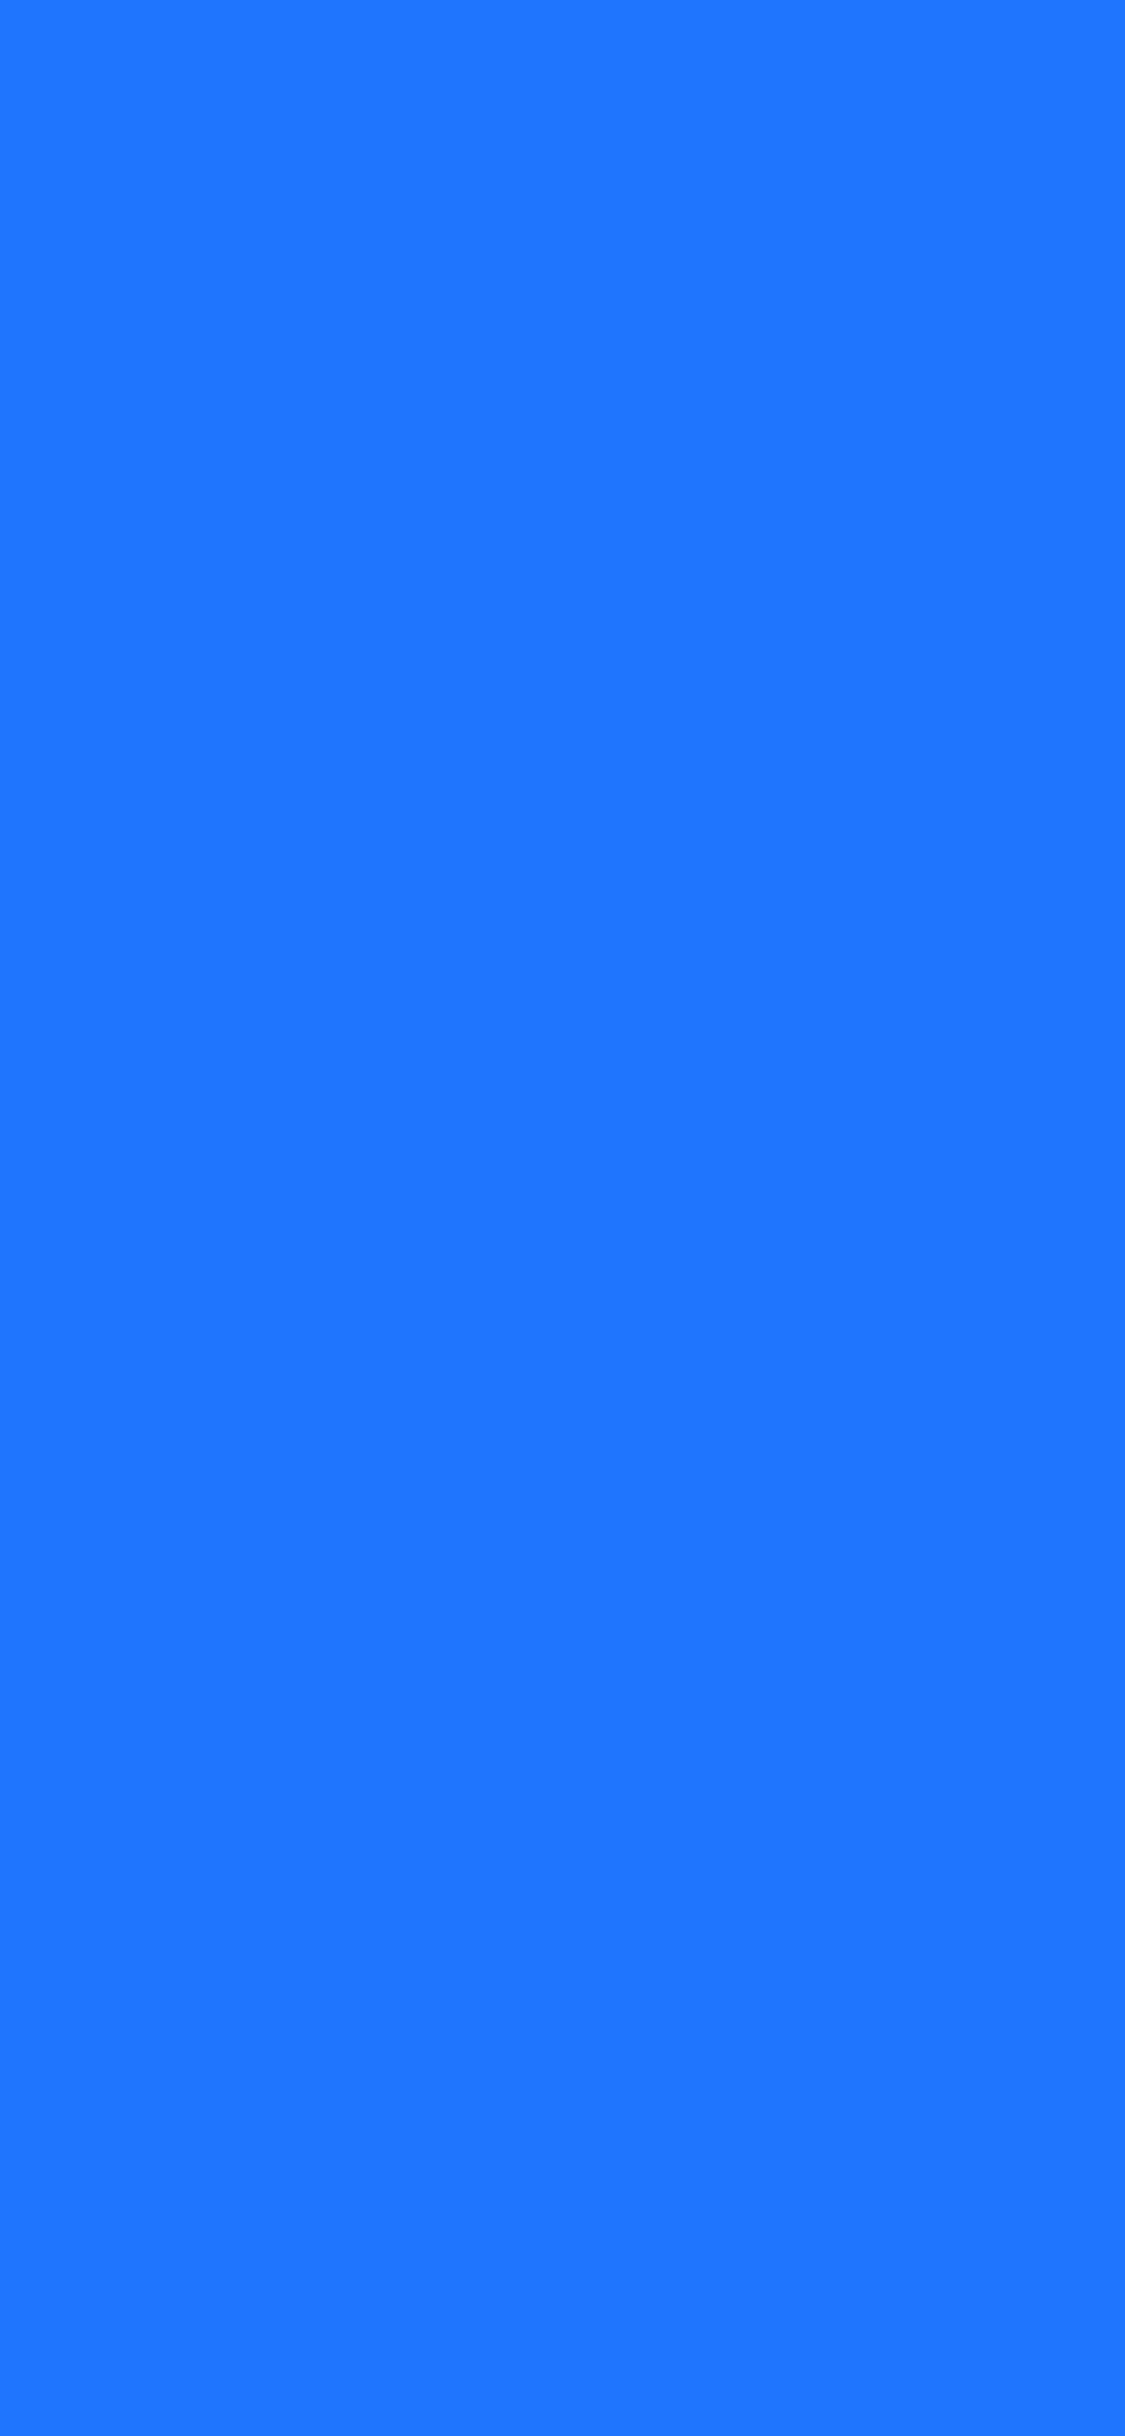 1125x2436 Blue Crayola Solid Color Background